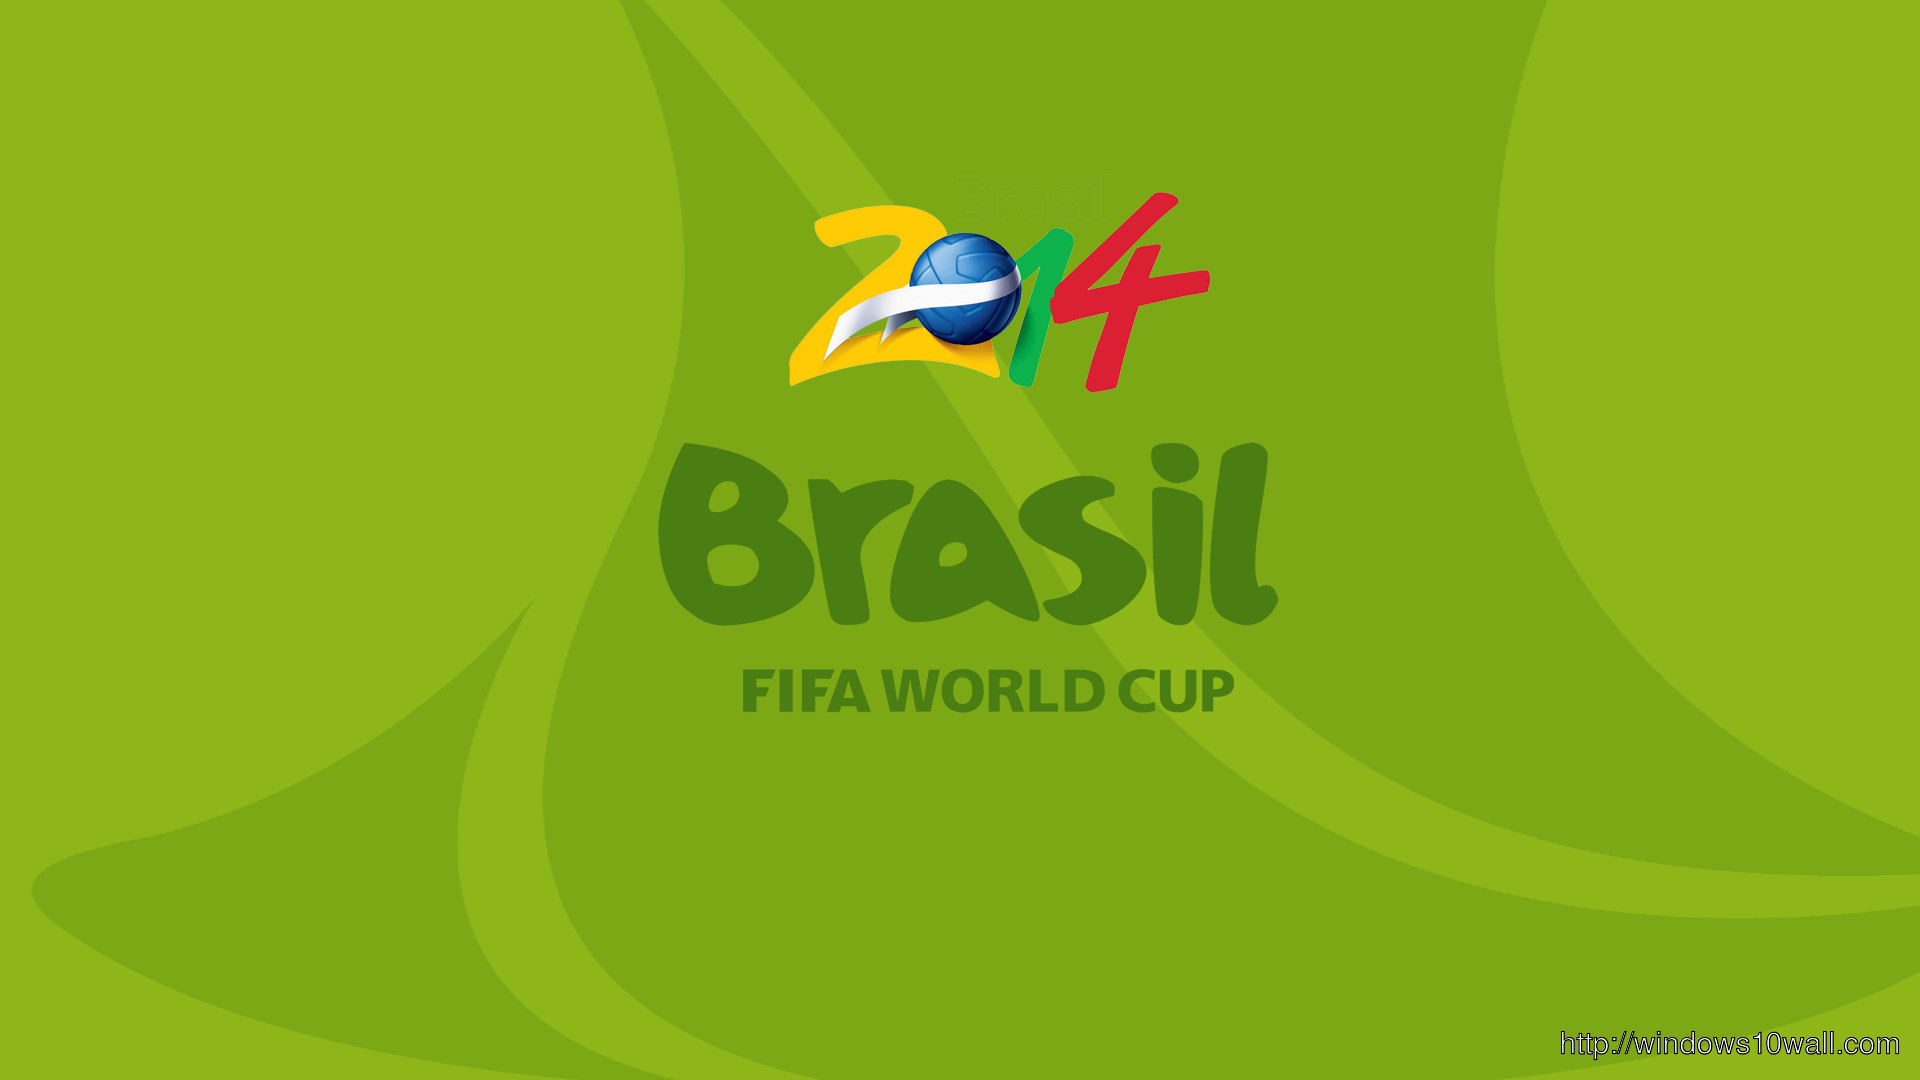 world cup brazil 2014 desktop wallpaper